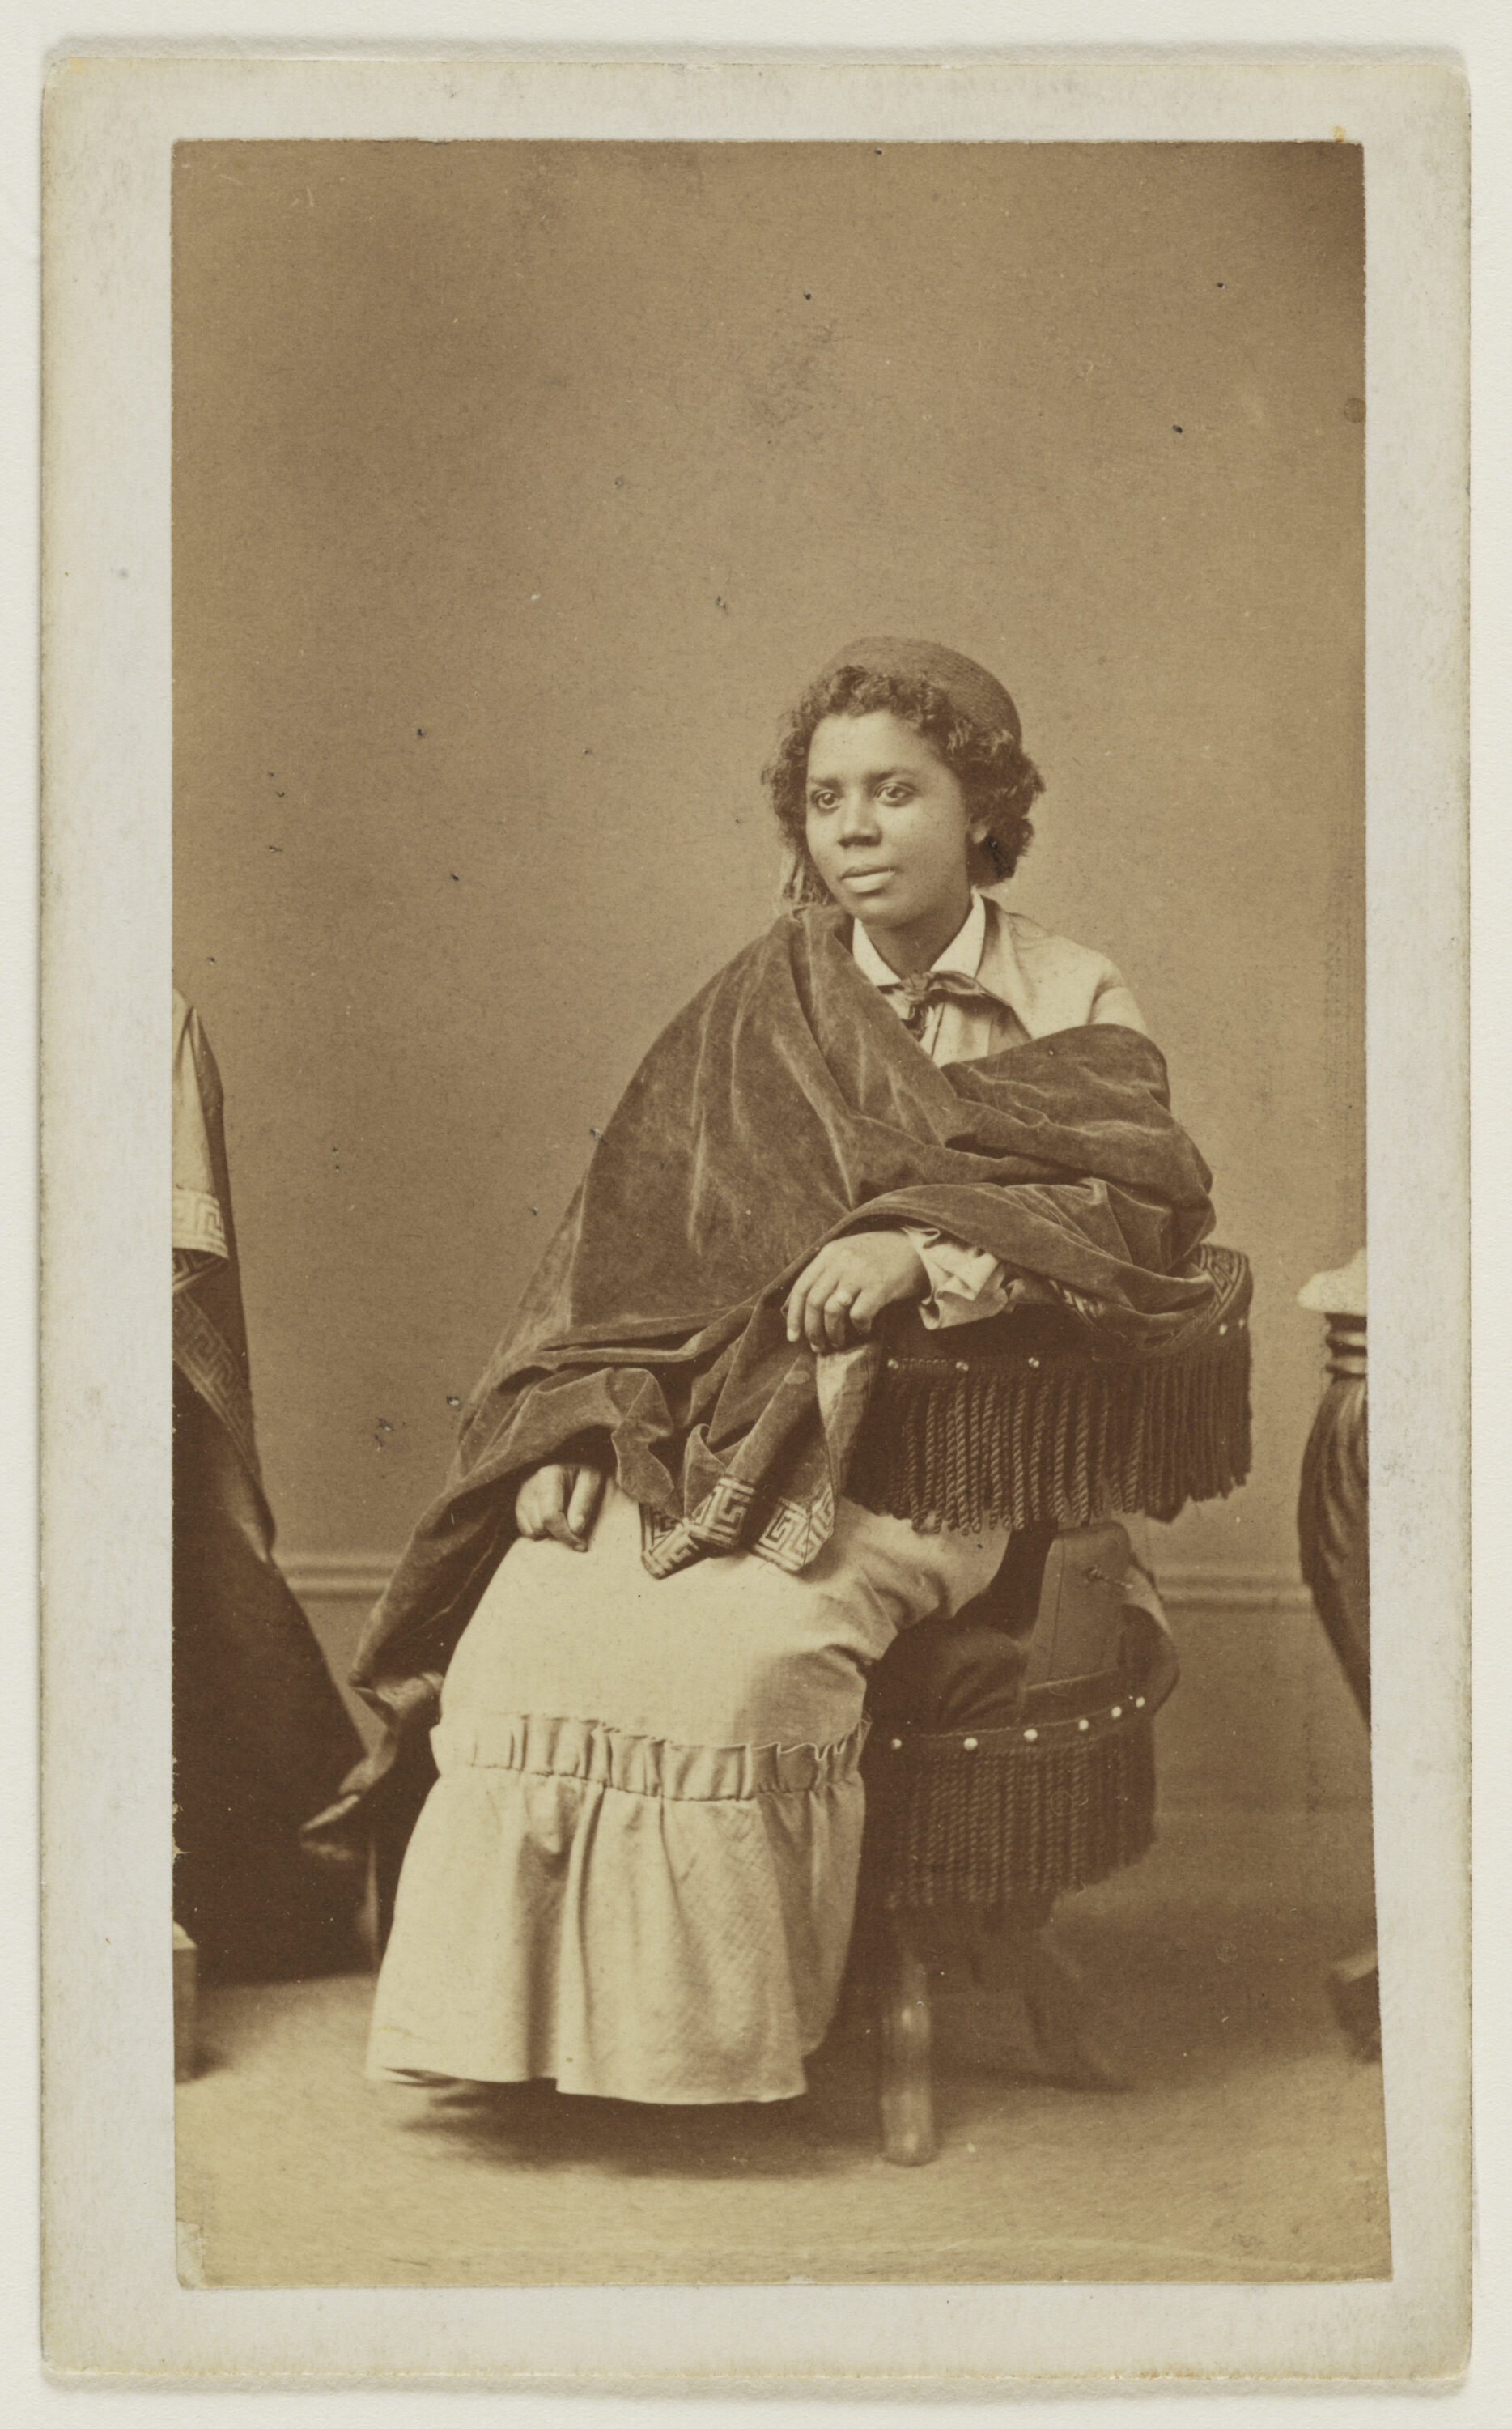 A black and white photograph from the late 1800s of a dark skinned woman seated on an upholstered chair with fringe around the arm and seat. She is wearing a white collared shirt with a scarf tied around her neck, a light colored jacket and a matching ankle length skirt. There is heavy, dark colored velvet fabric draped from her right shoulder to her left arm. She is wearing a round, flat-topped hat over her short wavy hair.